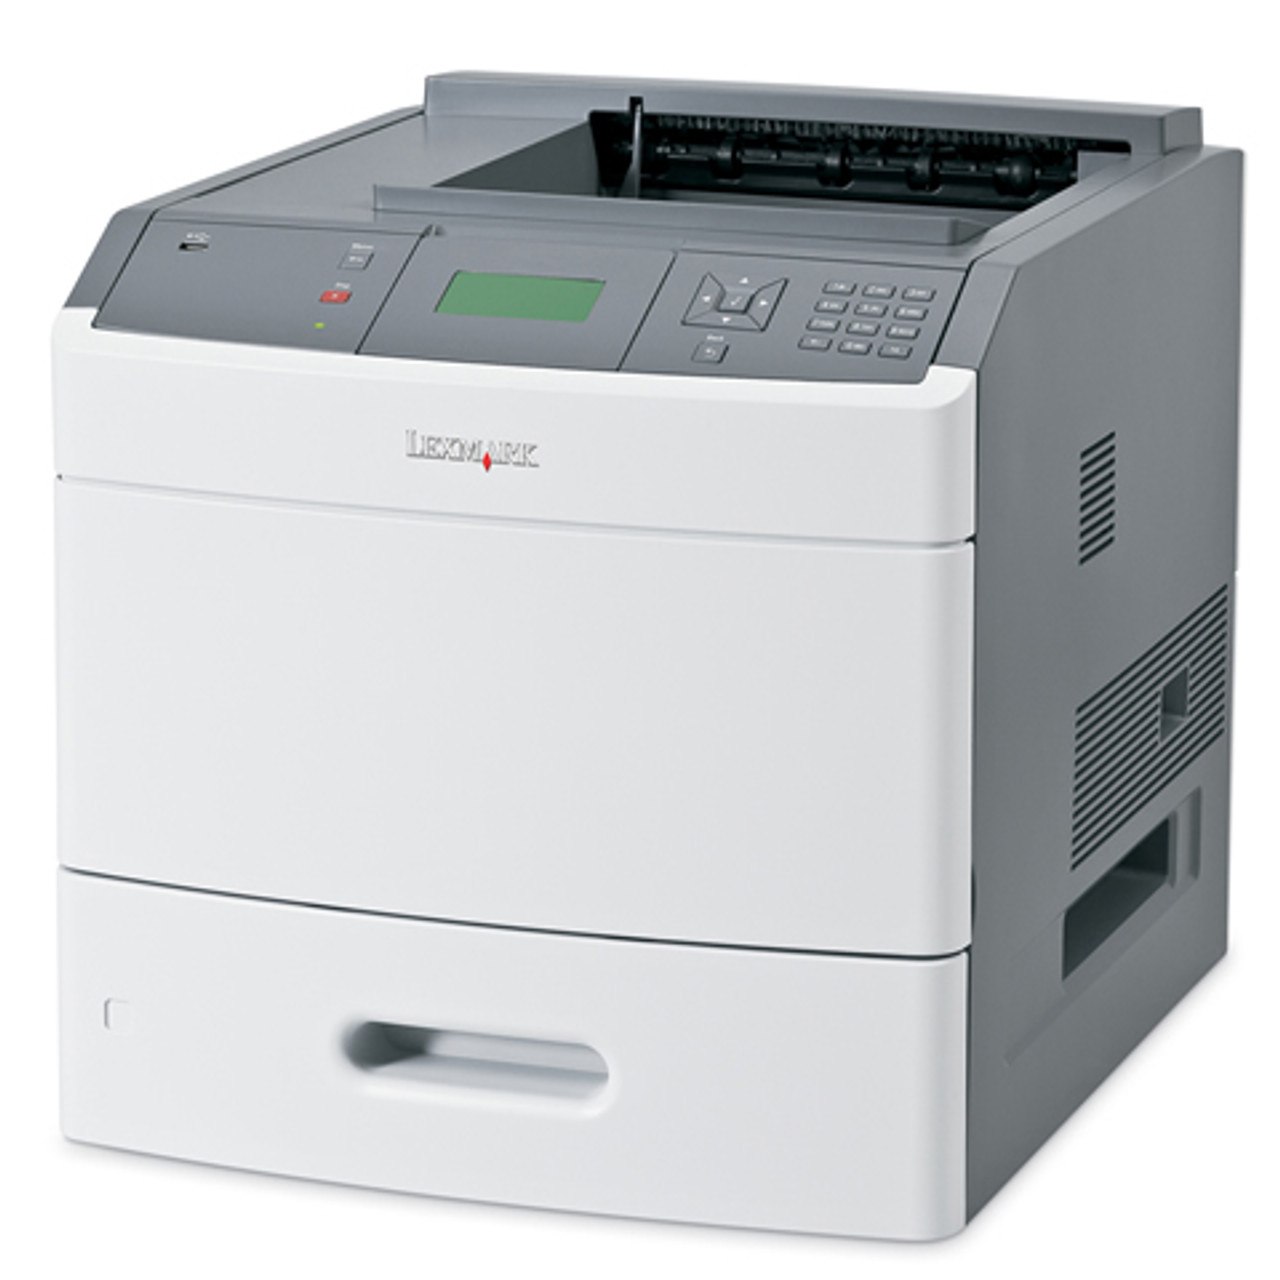 Lexmark T652dn - 30G0200 - Lexmark Laser Printer for sale